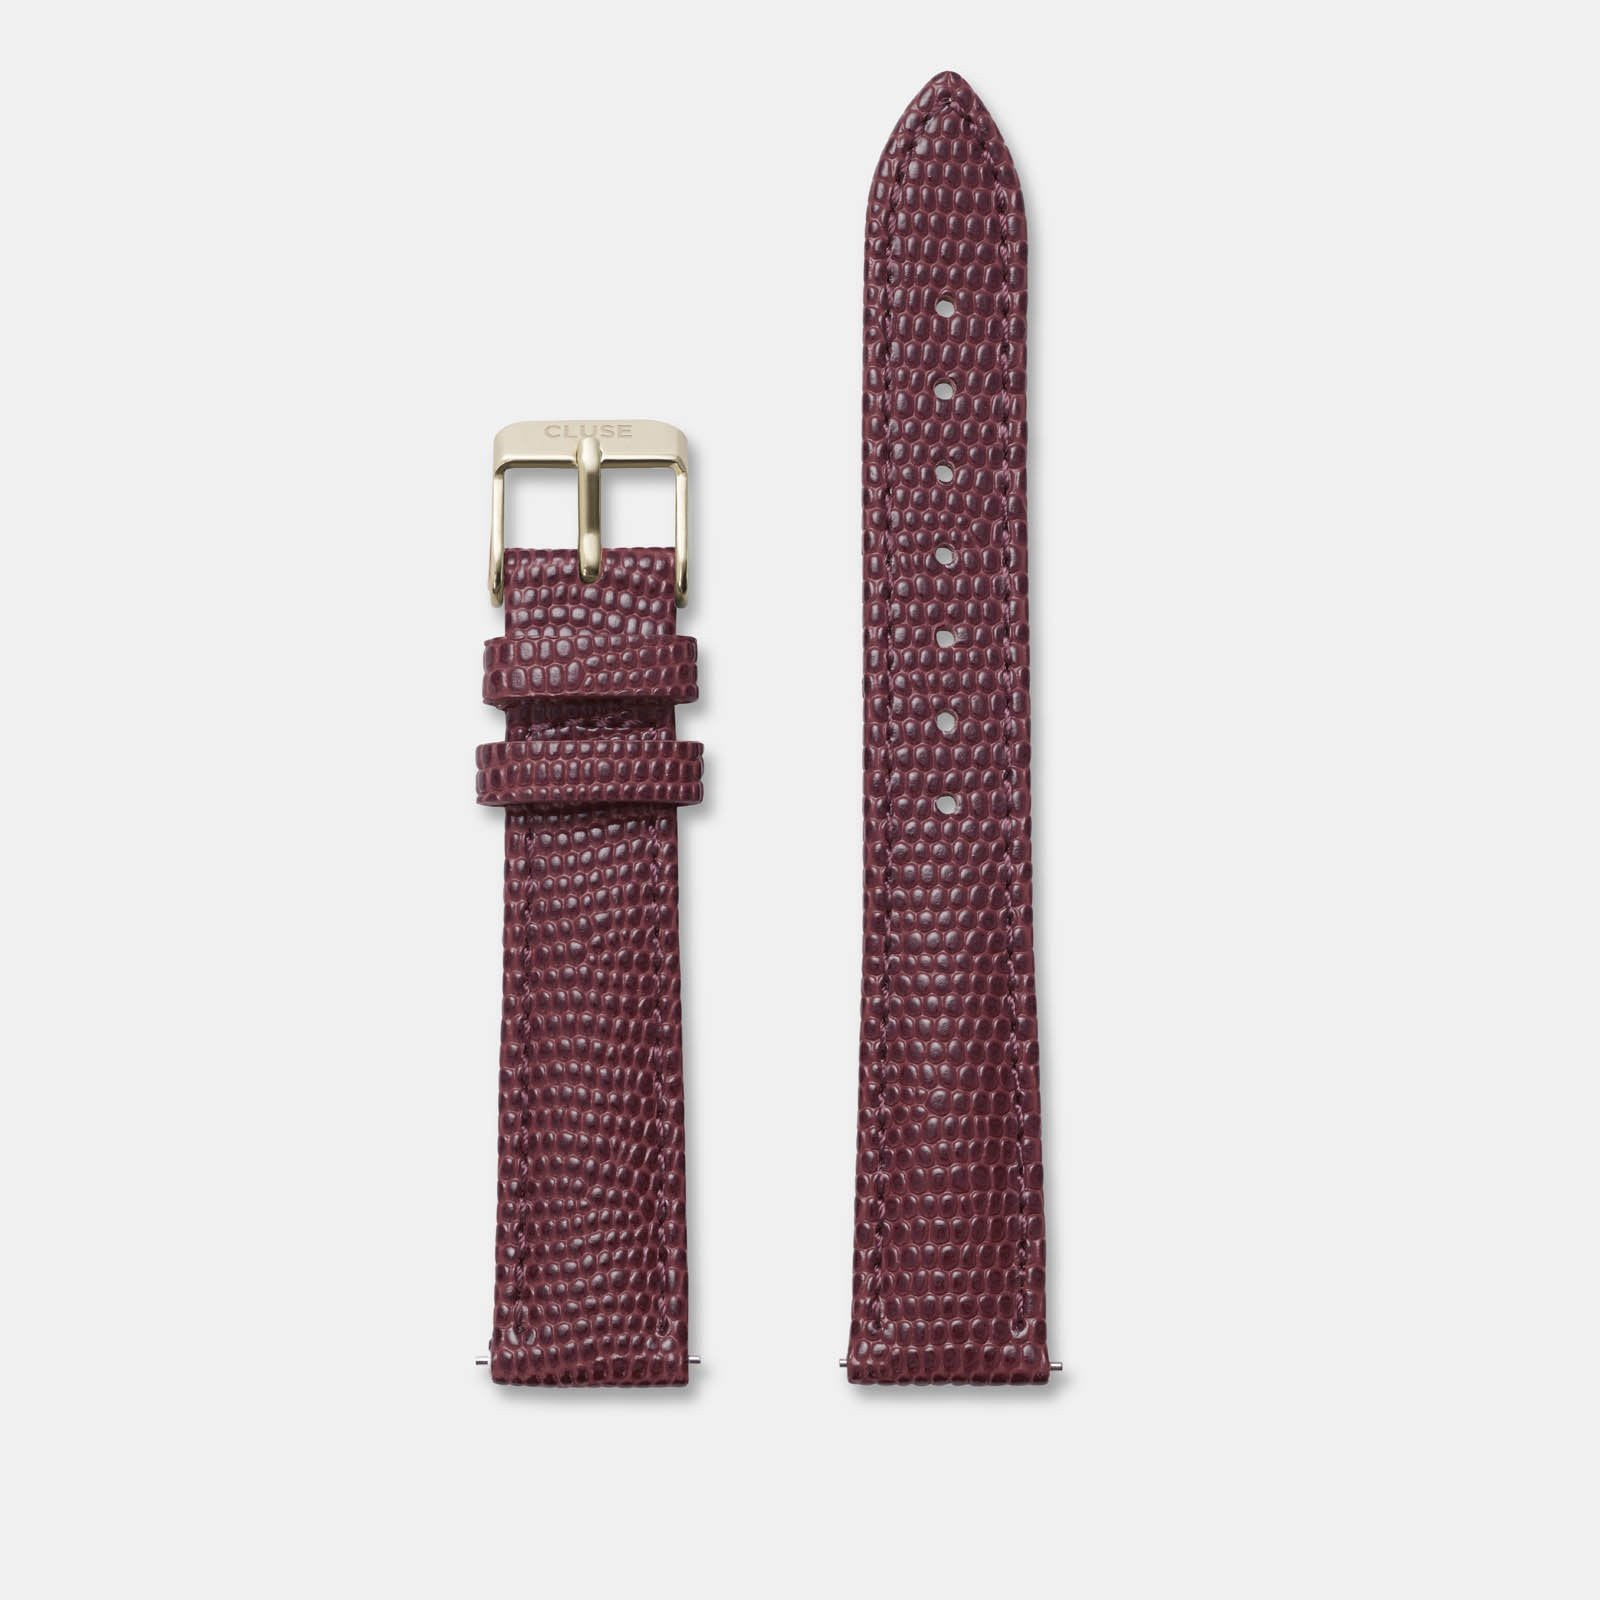 CLUSE 16 mm Strap Burgundy Lizard/Gold CLS379 - strap